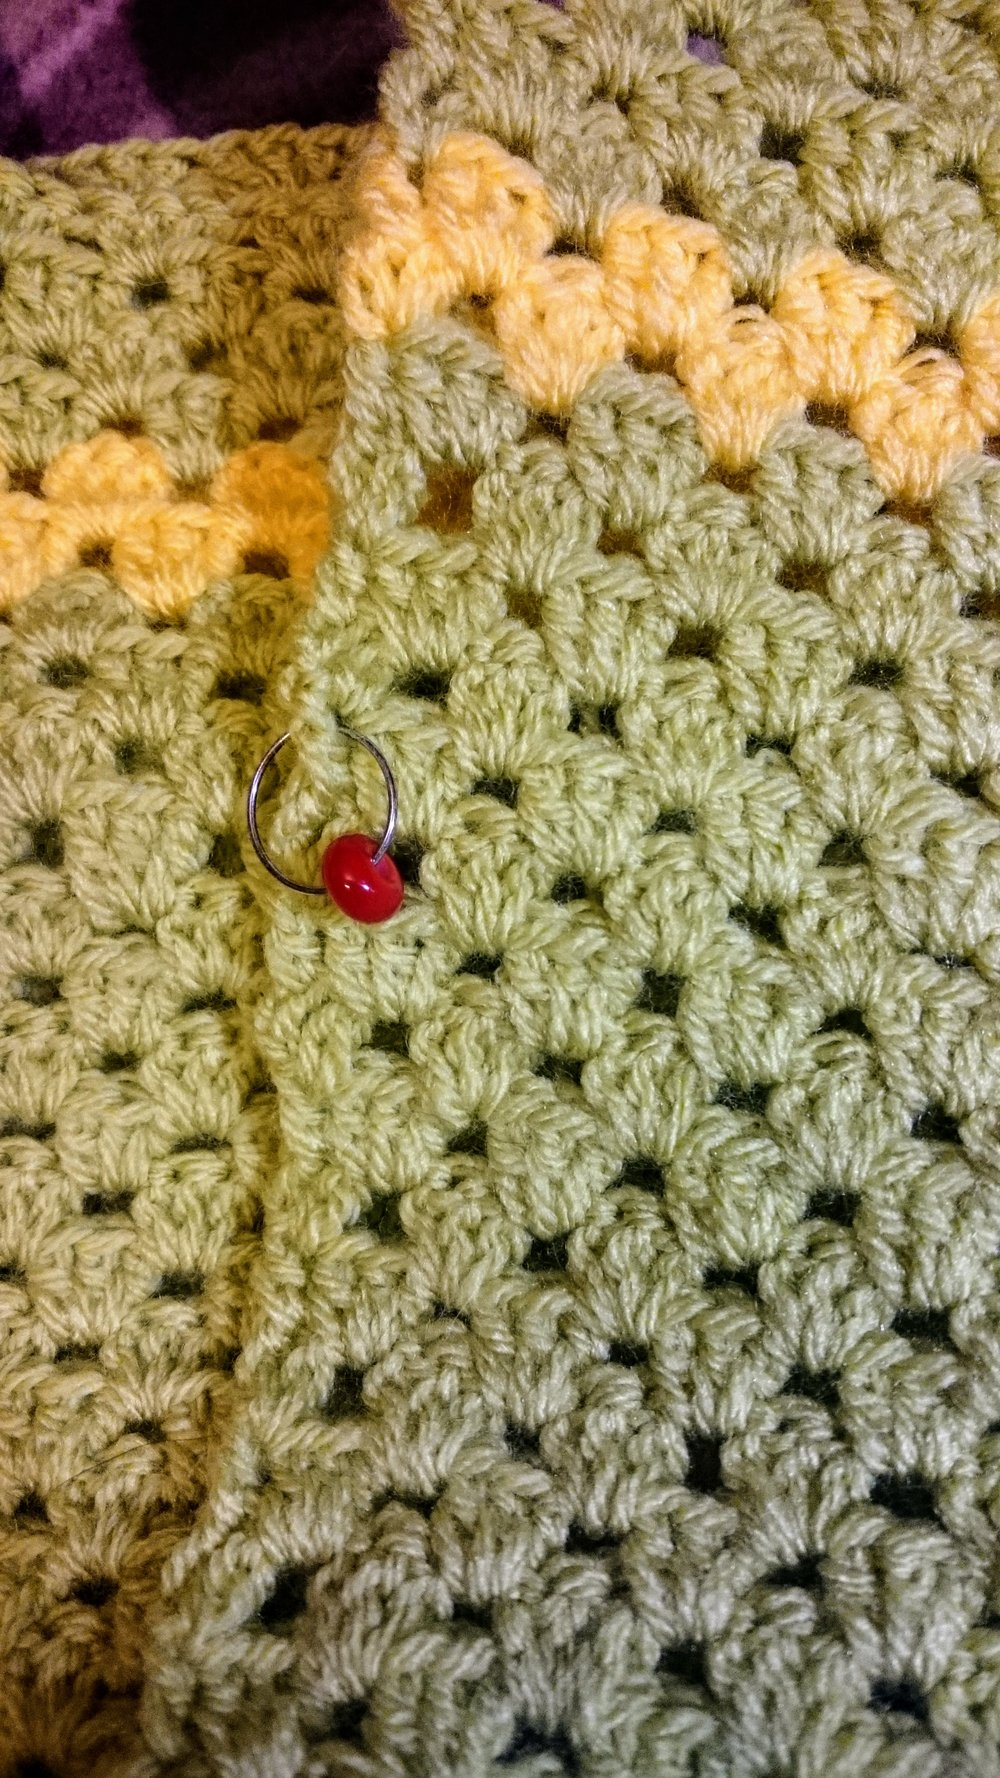 The whole Secret Santa project made me want to start doing some crochet myself - I think it's going to be quite some time before I get to Sarah's standard!